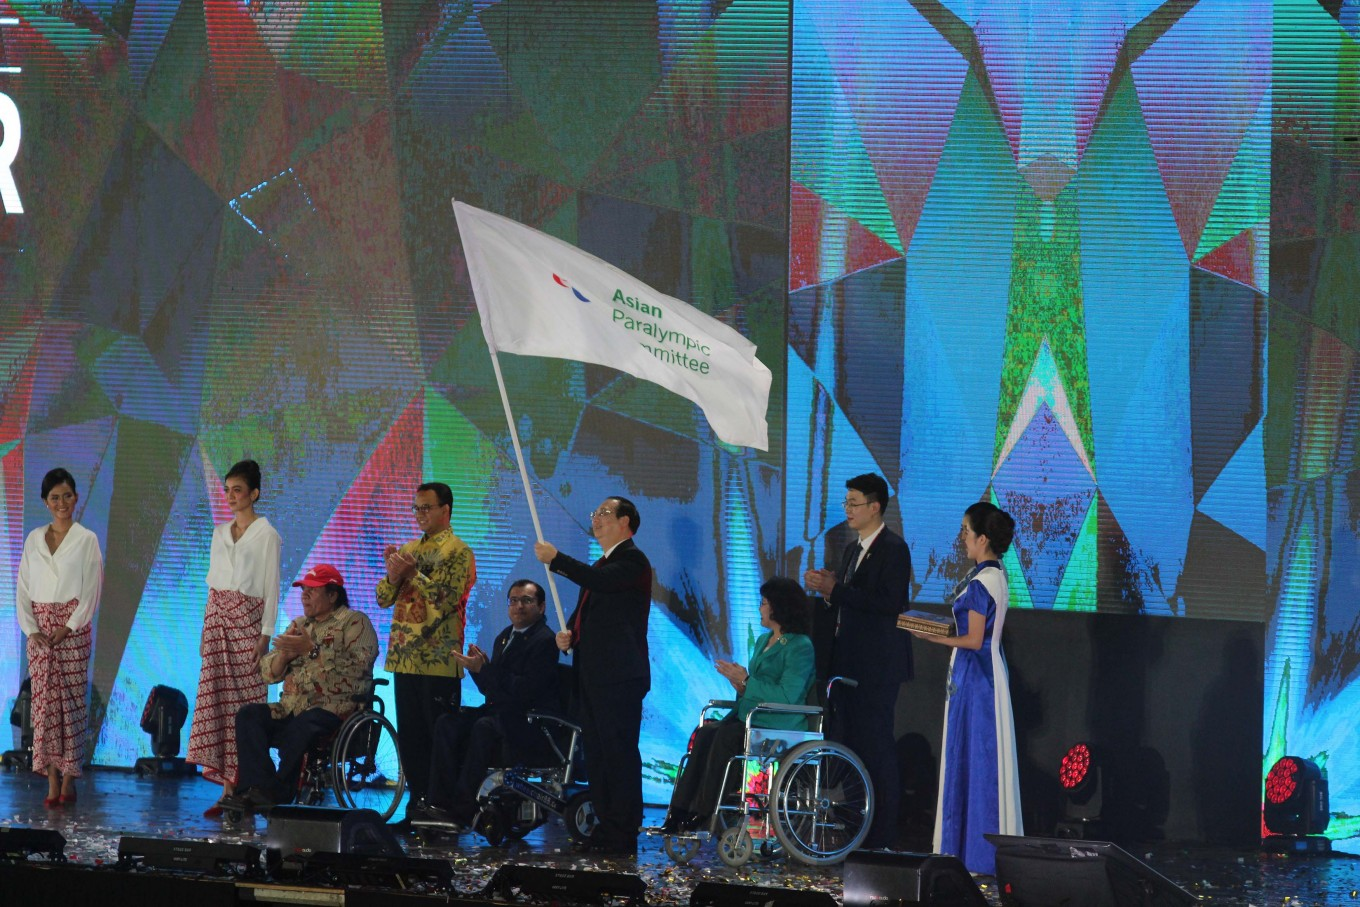 Indonesia passes Asian Para Games flag to Hangzhou